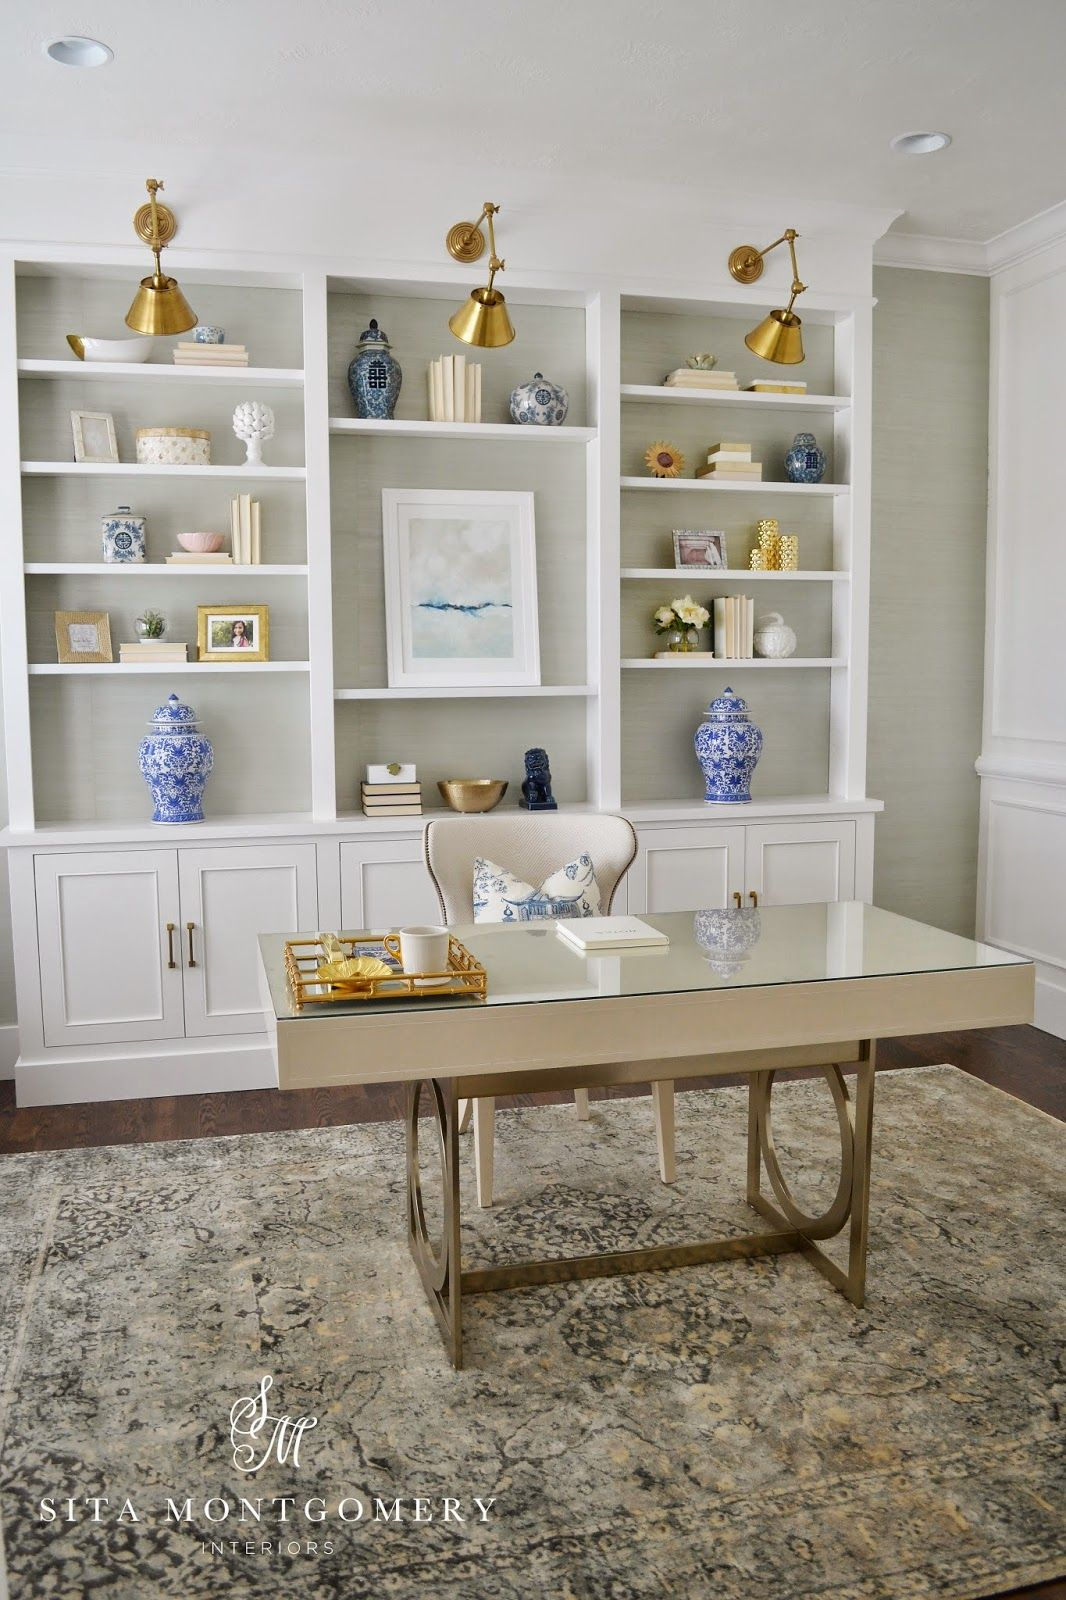 Sita montgomery interiors sita montgomery interiors my home office